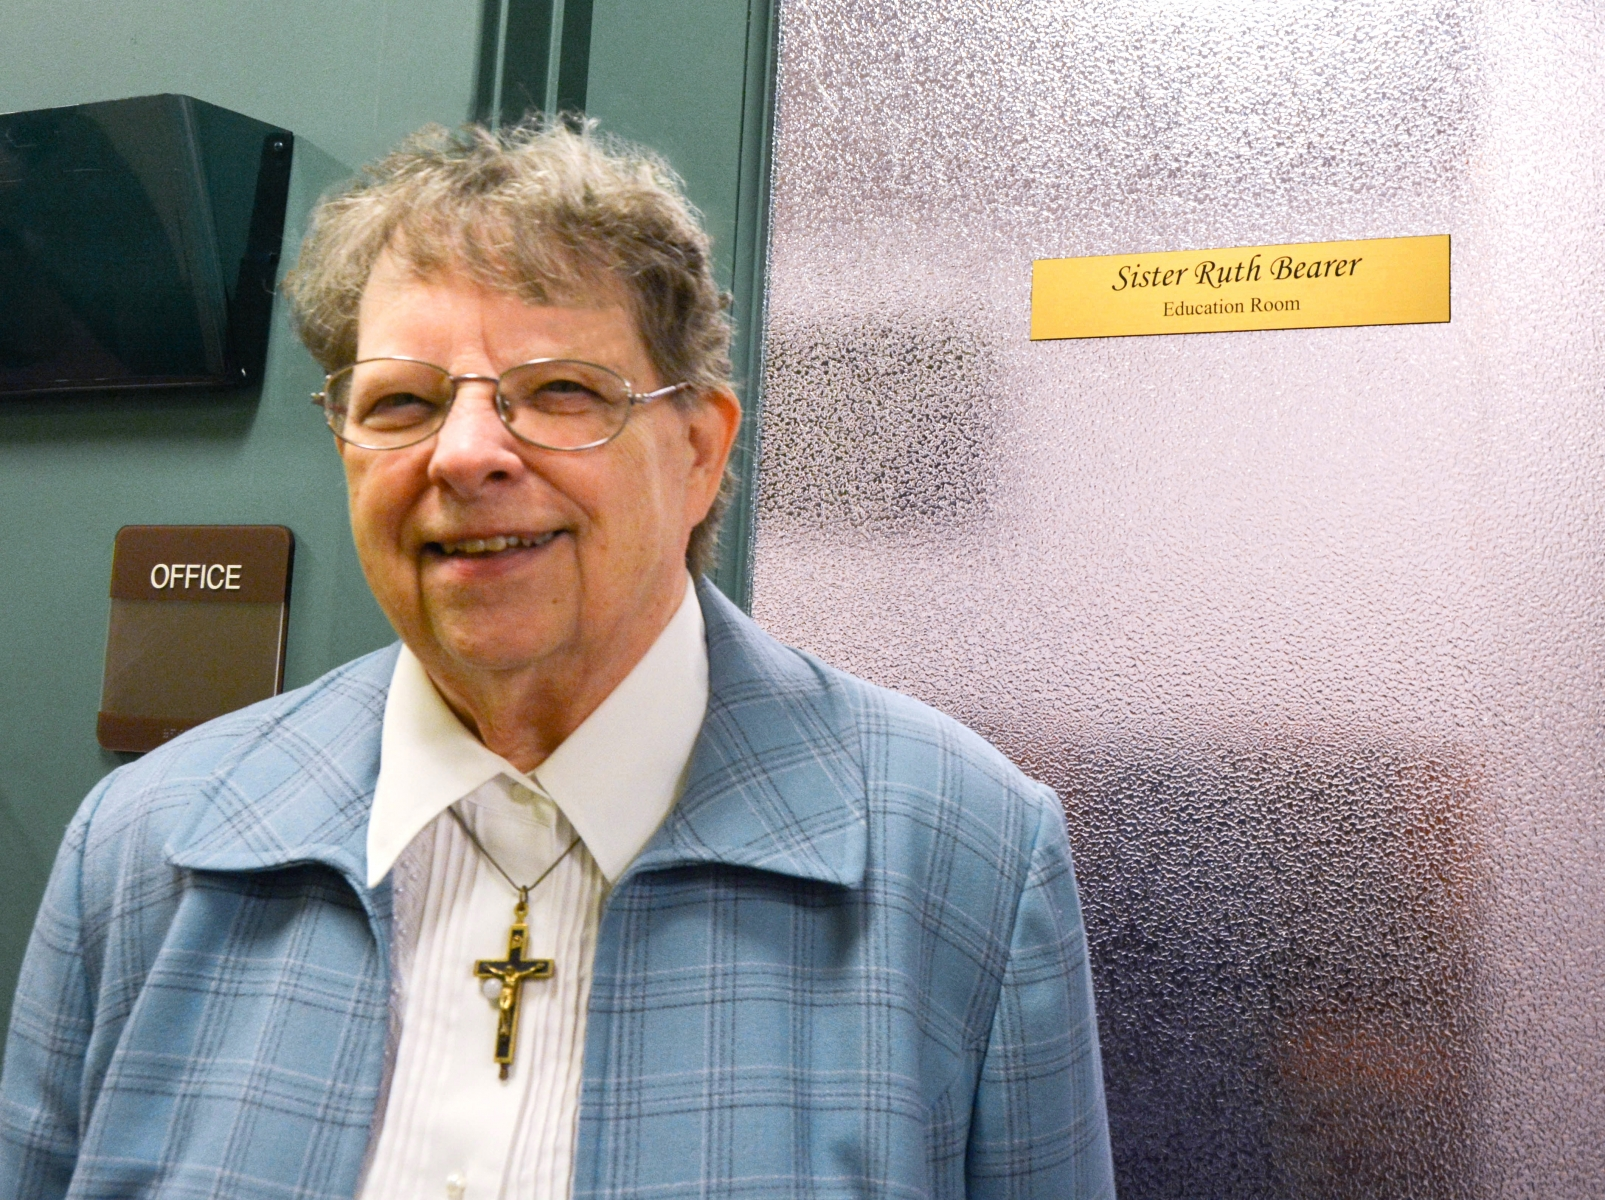 Honoring Sister Ruth Bearer